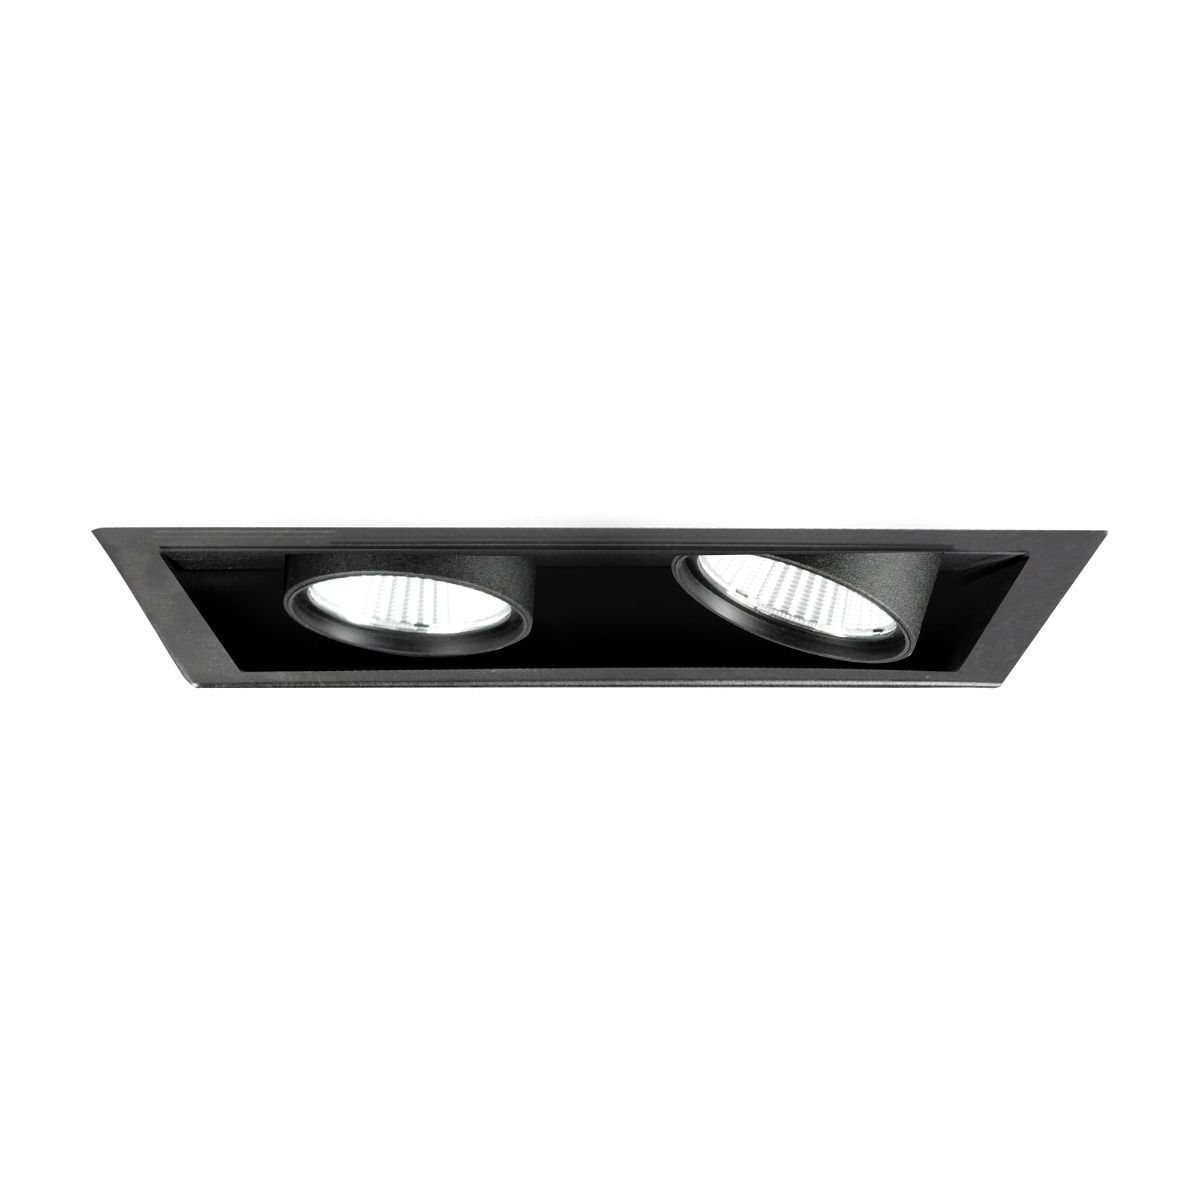 more photos c8106 7efc6 Alcon Lighting 14113-2 Oculare Pull-Down Architectural LED Trimless and  Flanged Adjustable 2 Heads Multiple Recessed Lighting System Direct Down ...